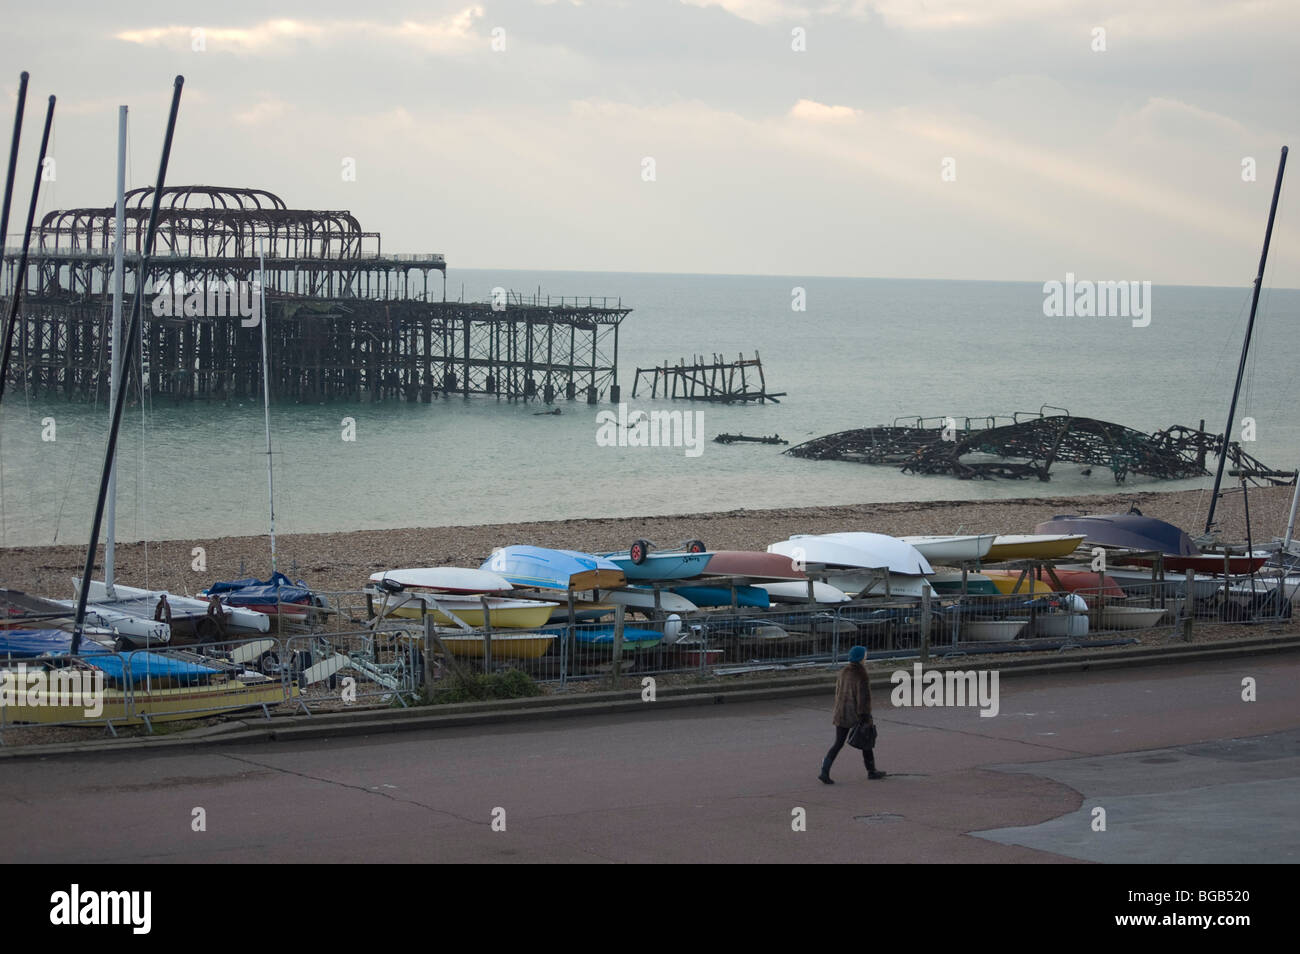 The Old West Pier, Brighton, UK - Stock Image